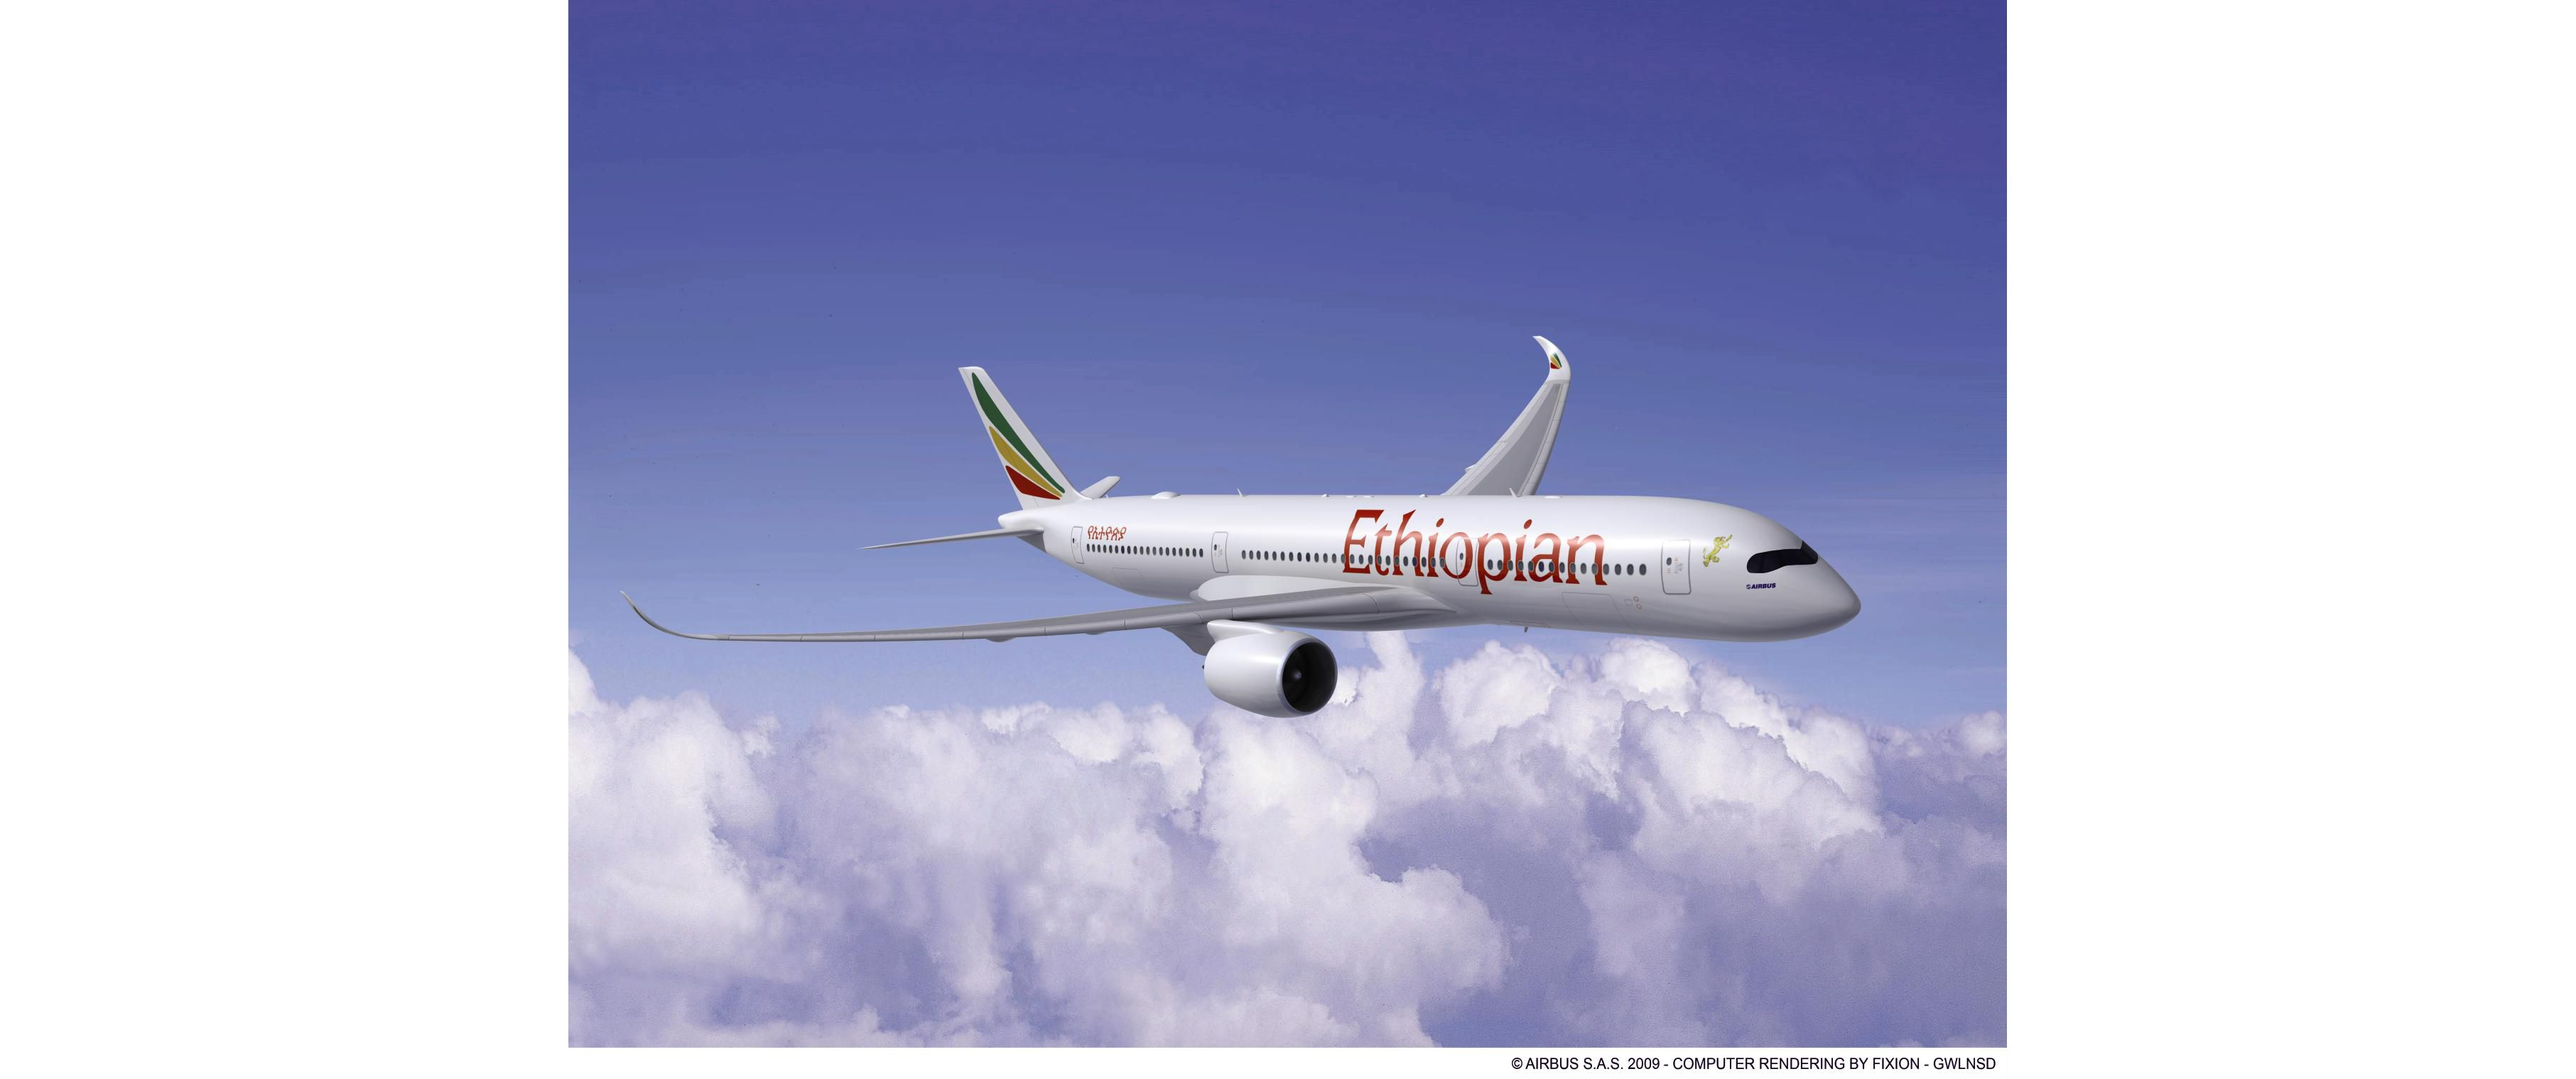 ethiopian airline mission vission Find company research, competitor information, contact details & financial data for the coca-cola company get the latest business insights from d&b hoovers.